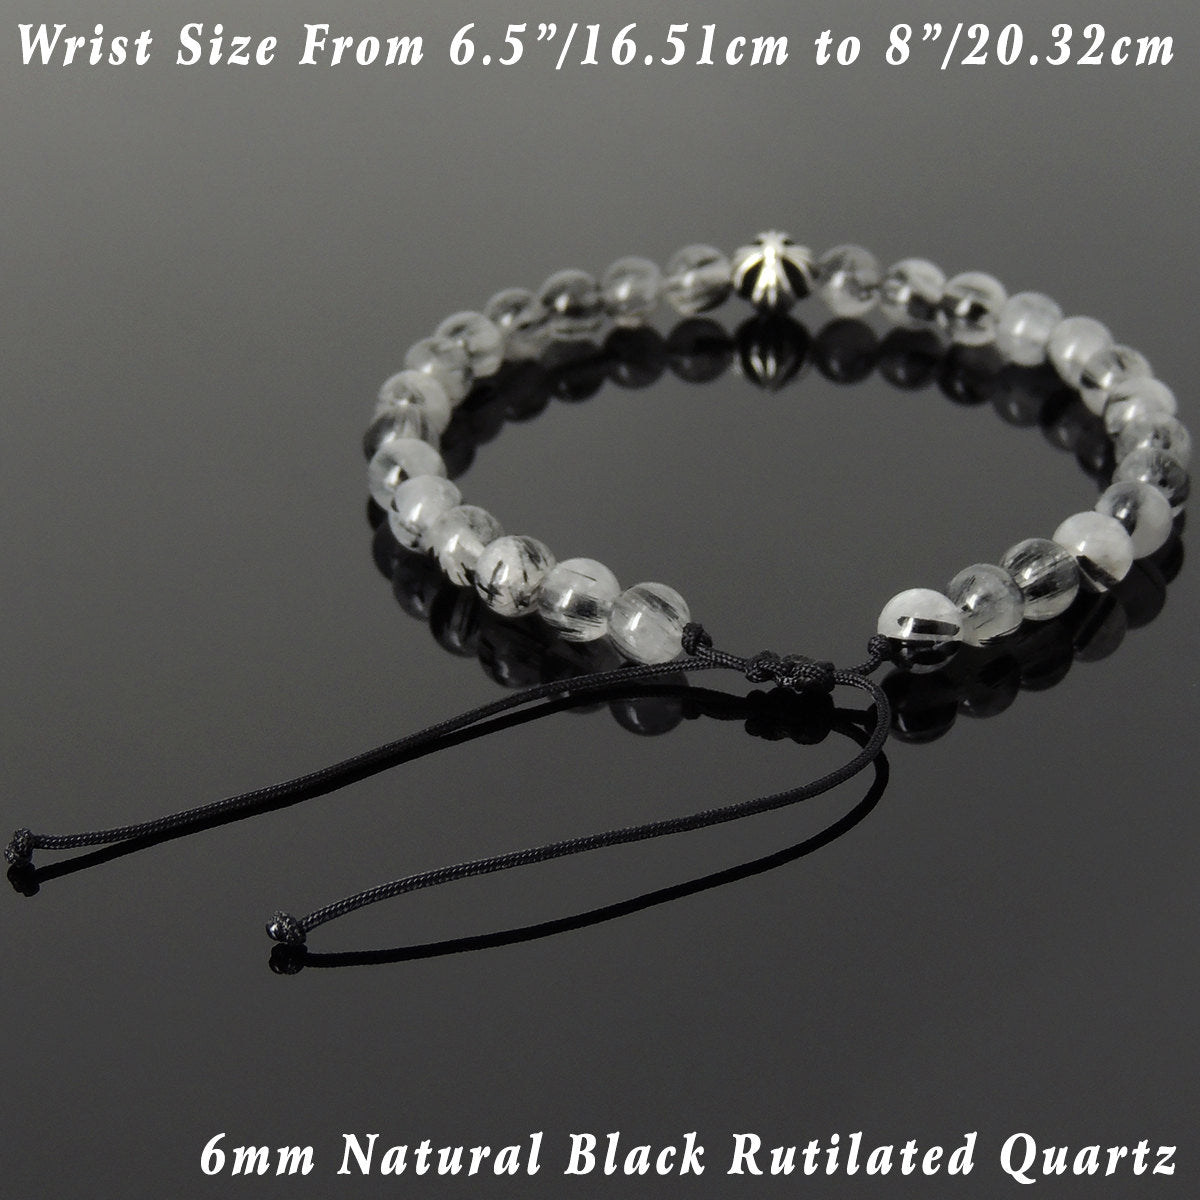 6mm Black Rutilated Quartz Adjustable Braided Gemstone Bracelet with S925 Sterling Silver Cross Bead - Handmade by Gem & Silver BR1074